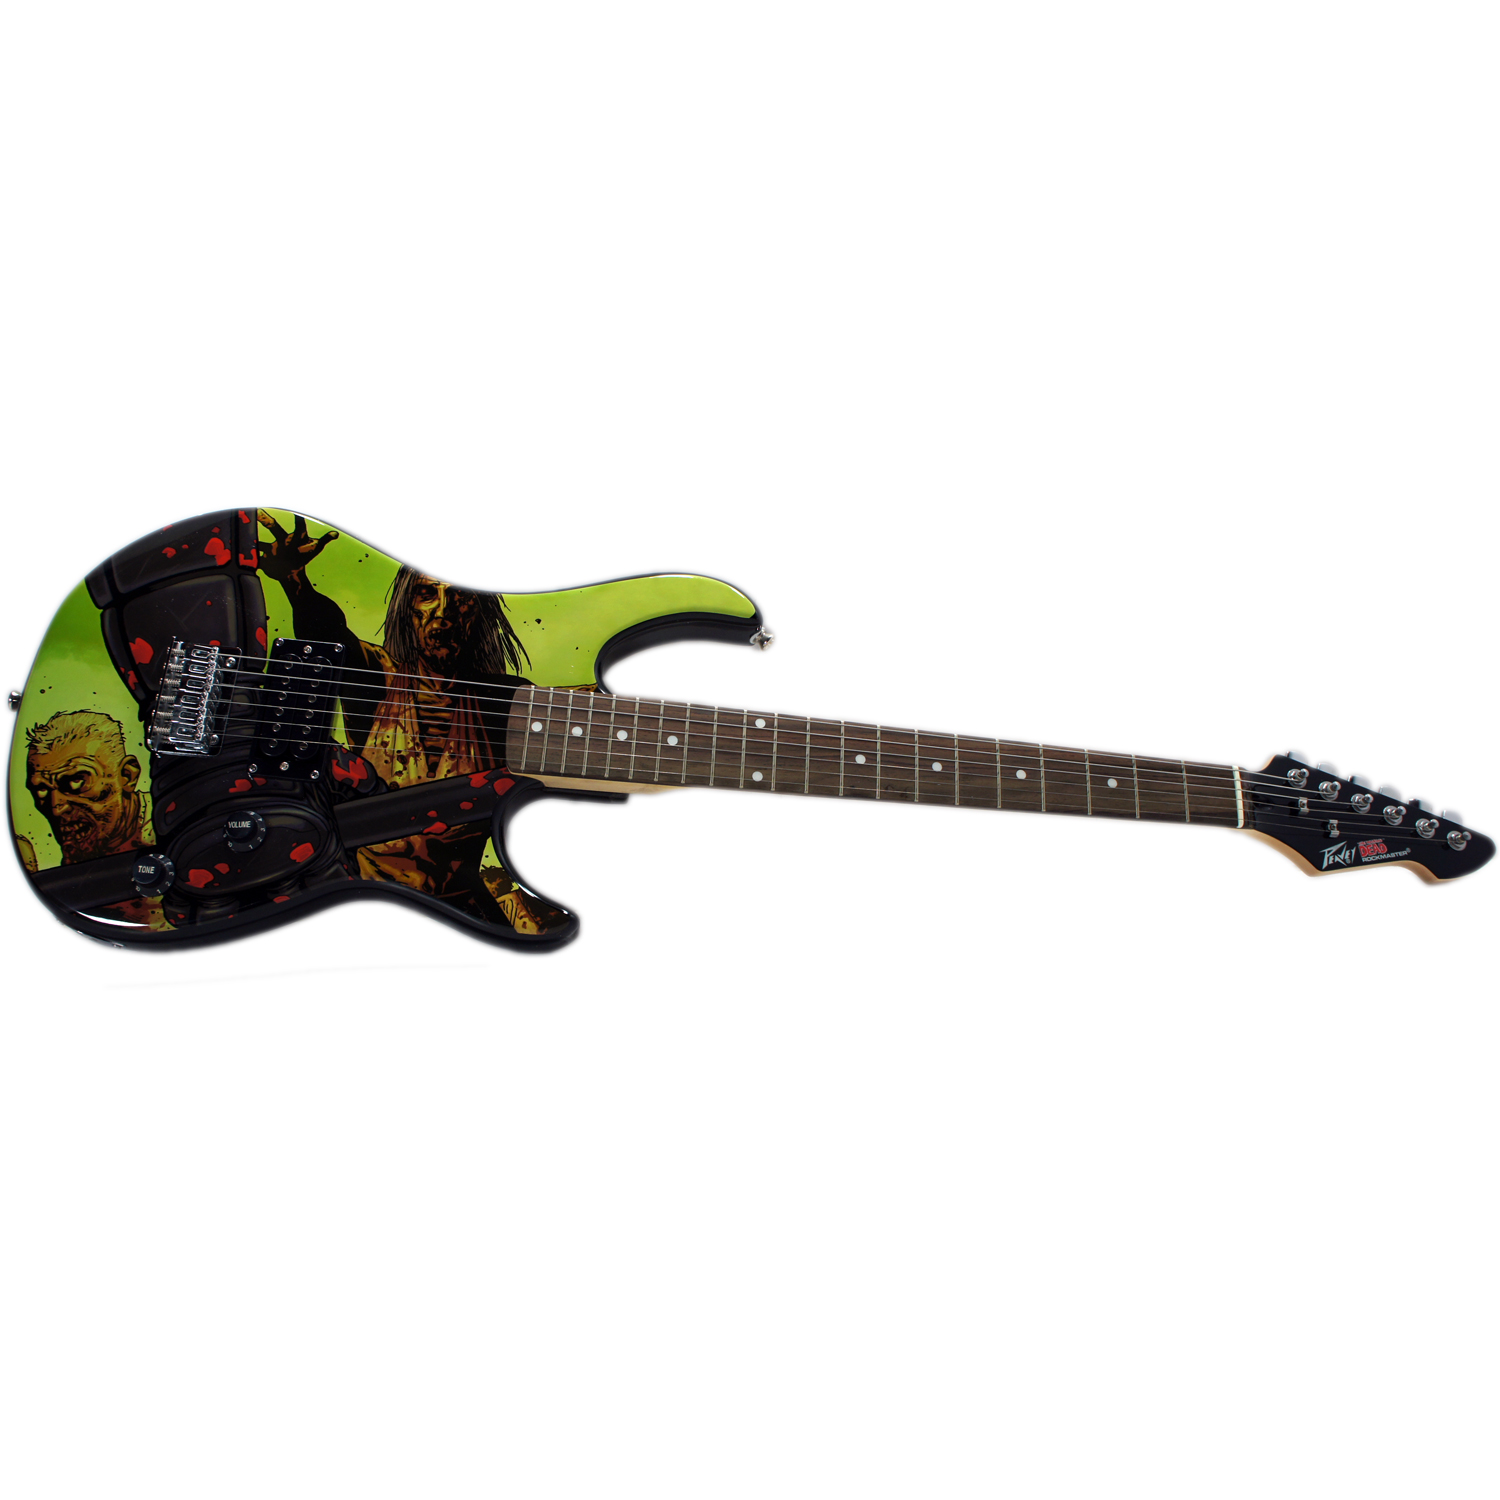 Peavy Rockmaster The Walking Dead - Riot 26 Full Size Maple Neck Electric Guitar